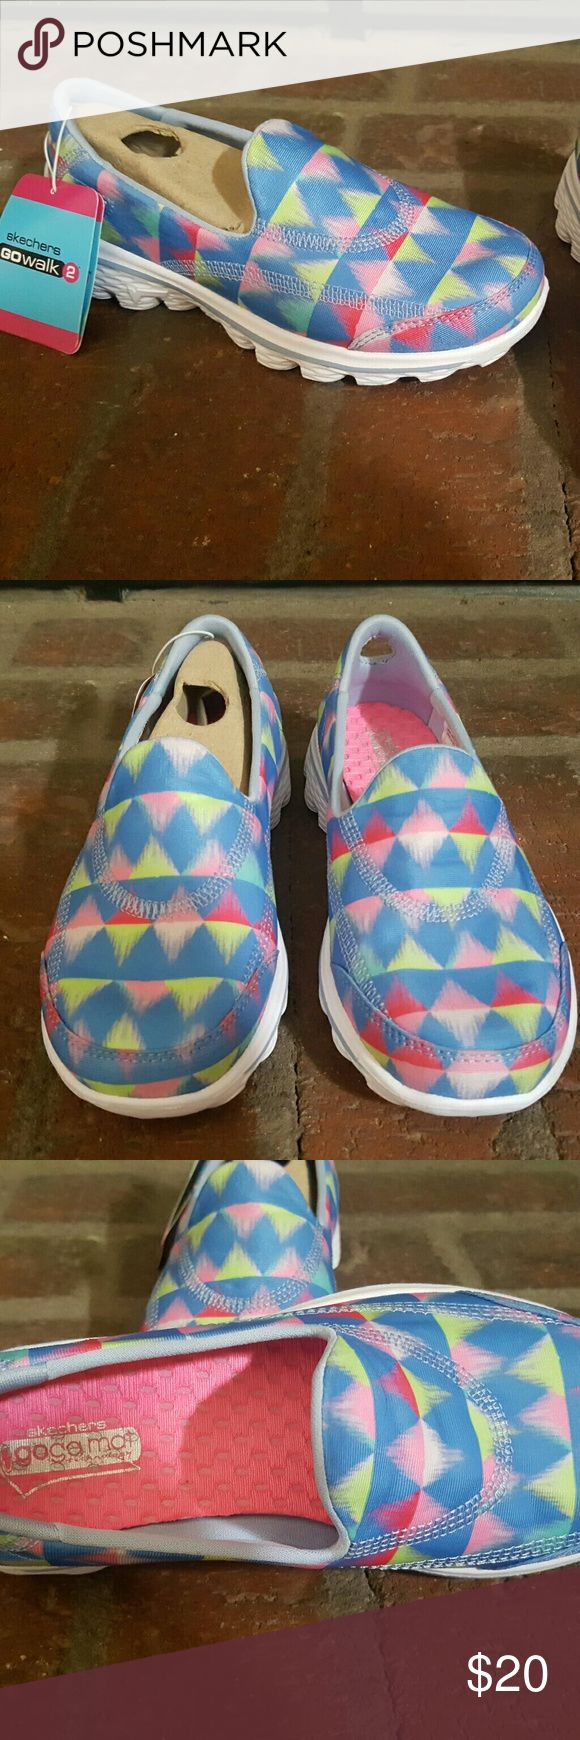 NWT's little girls Skechers Go Walk 2 sz. 13.5 New with tags attached little girls Skechers Go Walk 2 size 13.5. So cute and bright. Skechers Shoes Sneakers